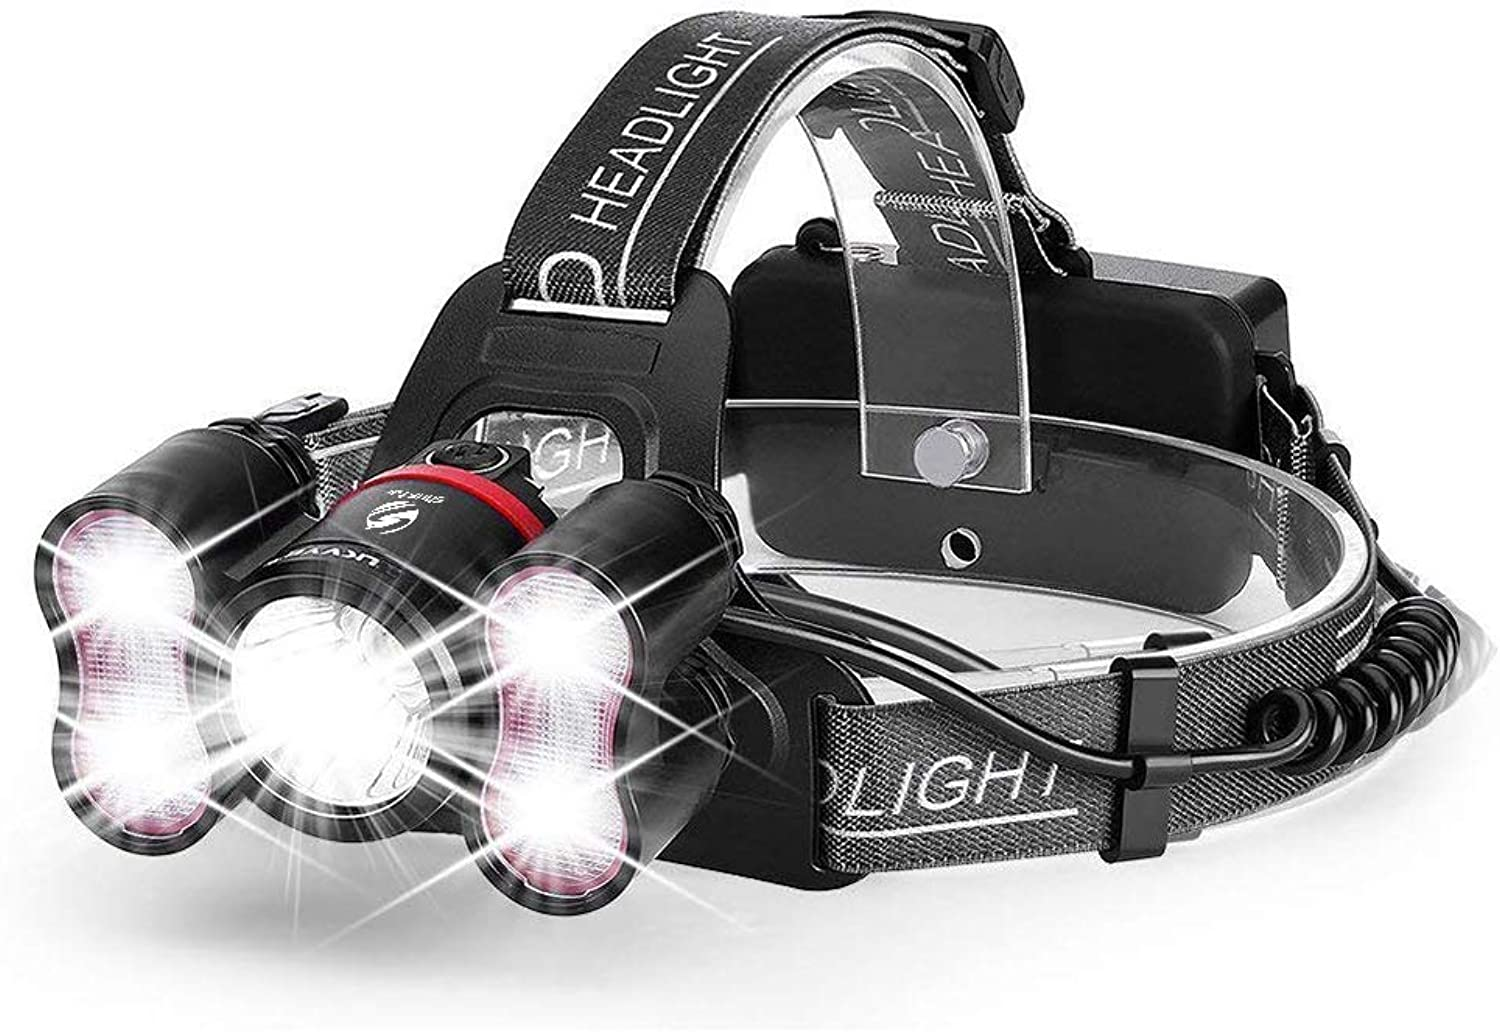 Stirnlampen 5 Leds Super Bright Led Headlamp 10000 Lumens Led Headlighr 4 Switch Modes Fishing Lamp Waterproof Headlight +2X